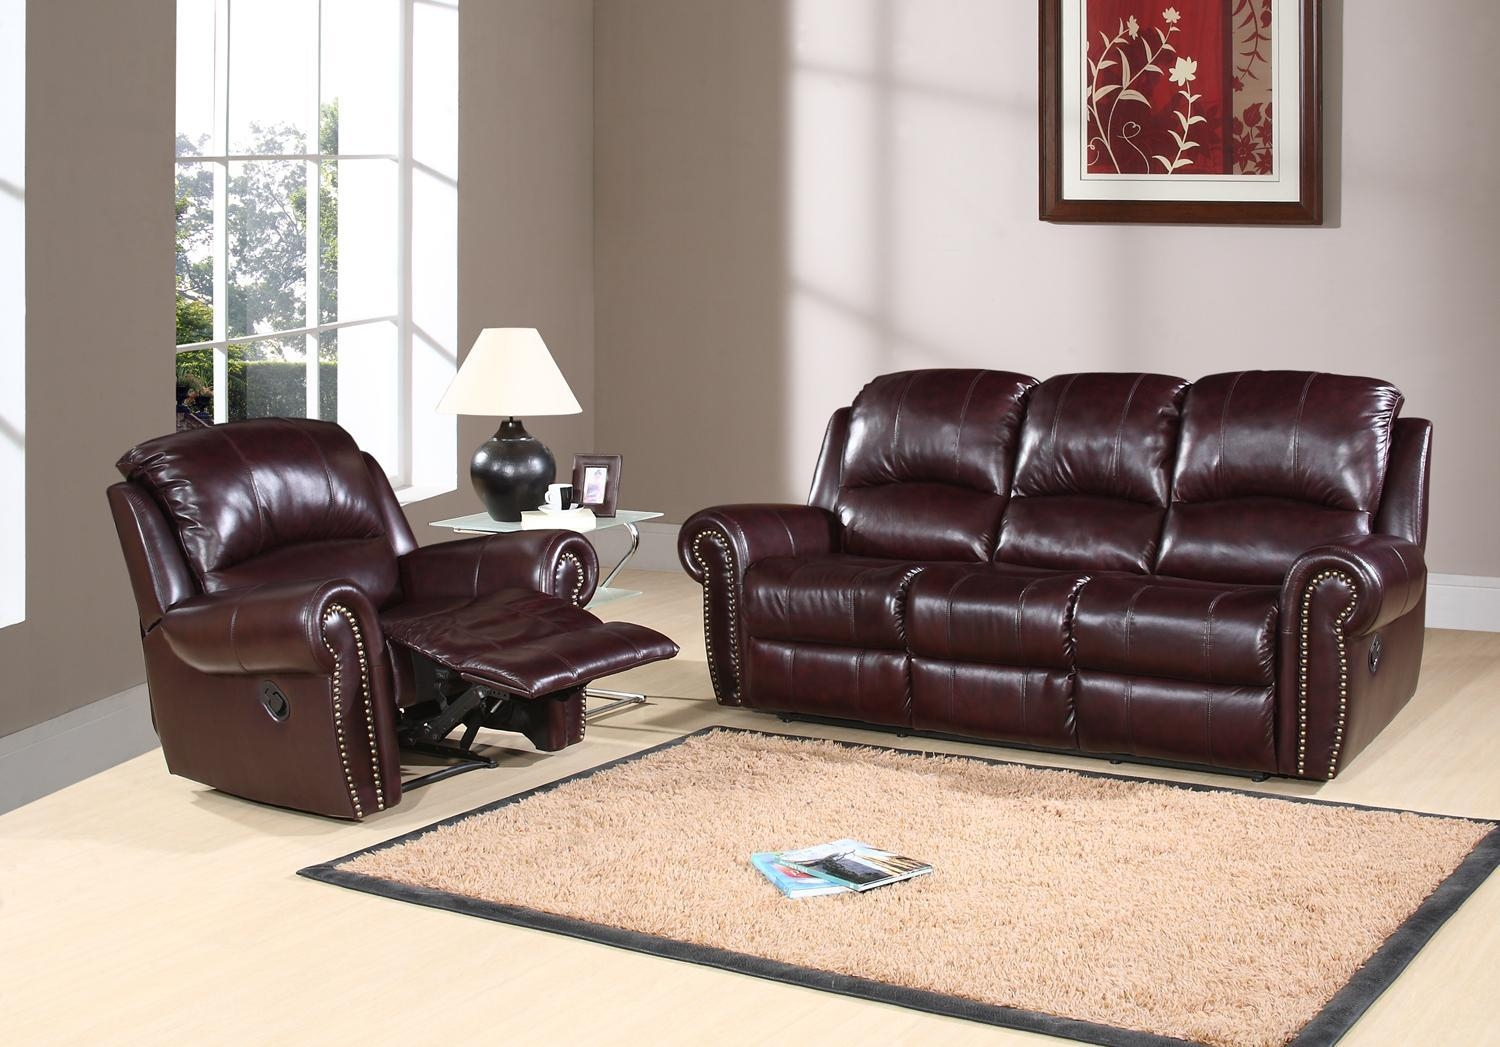 20 best collection of italian leather sofas sofa ideas for Italian leather sofa